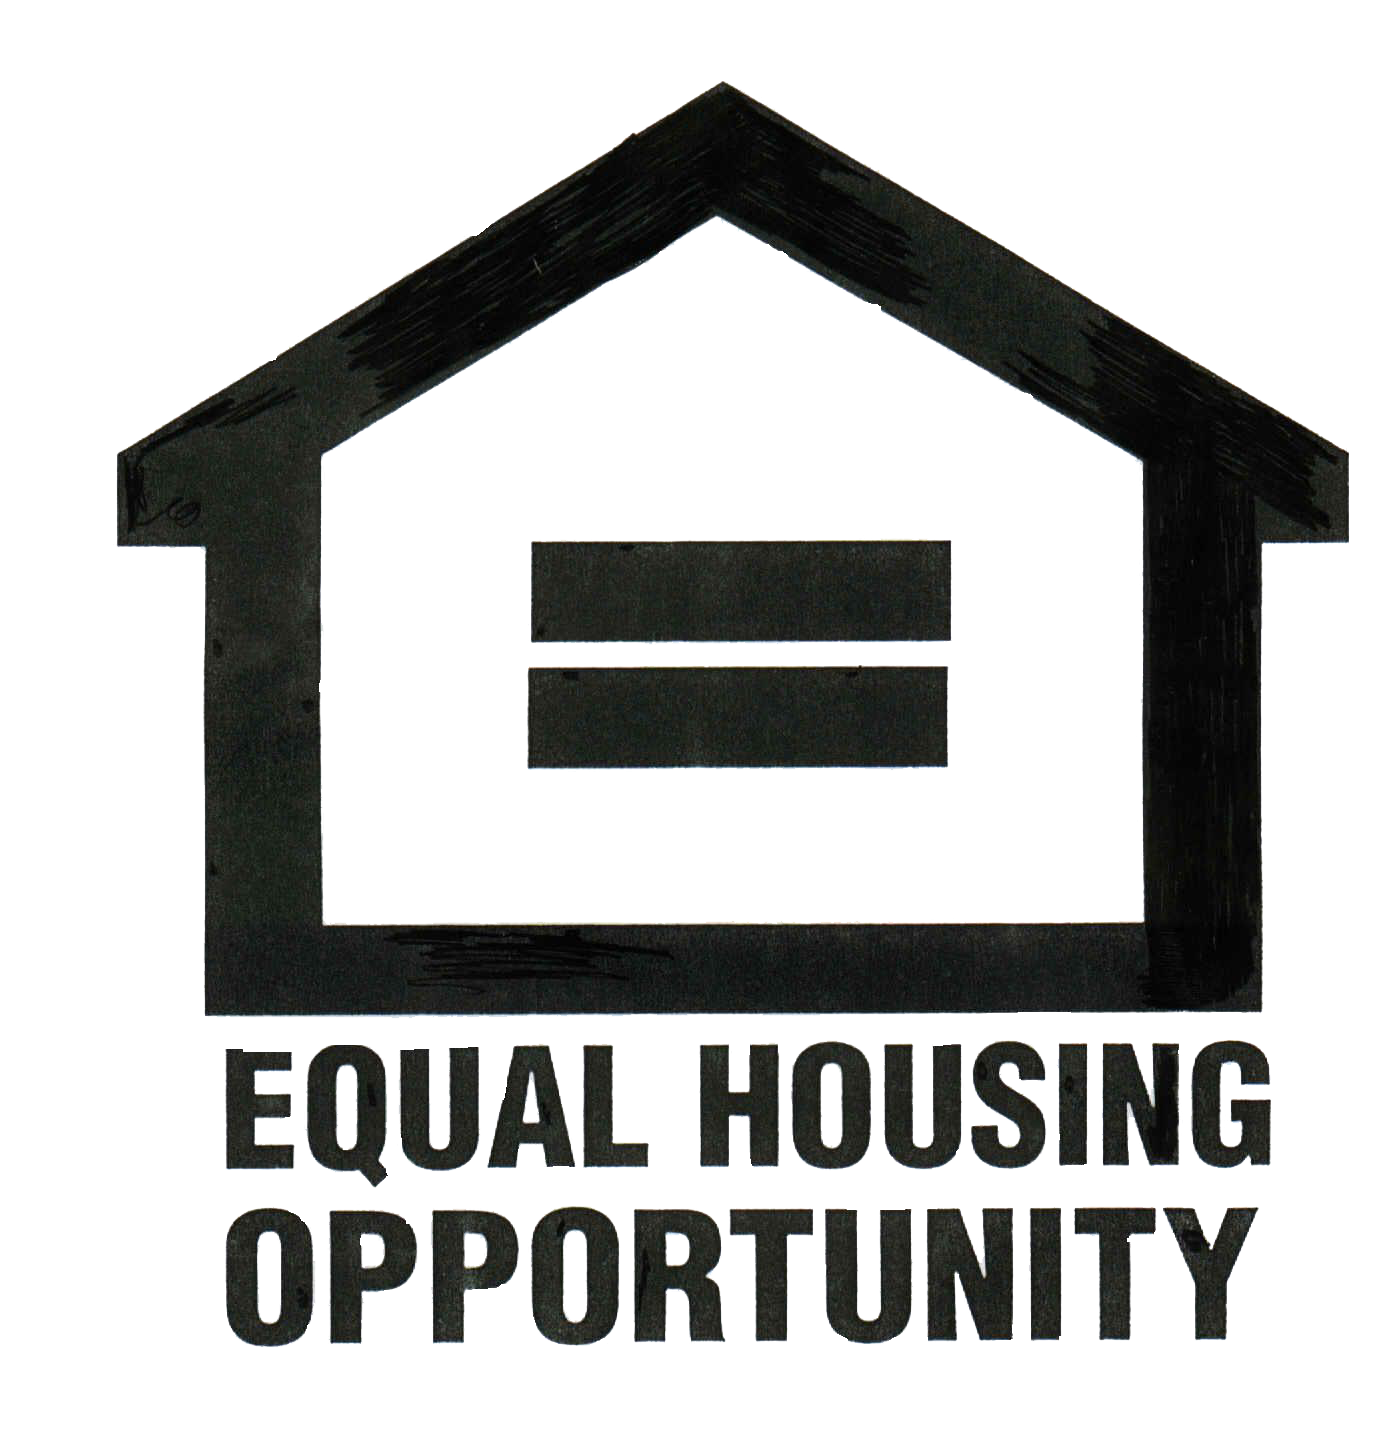 Equal housing logo png. What s new with